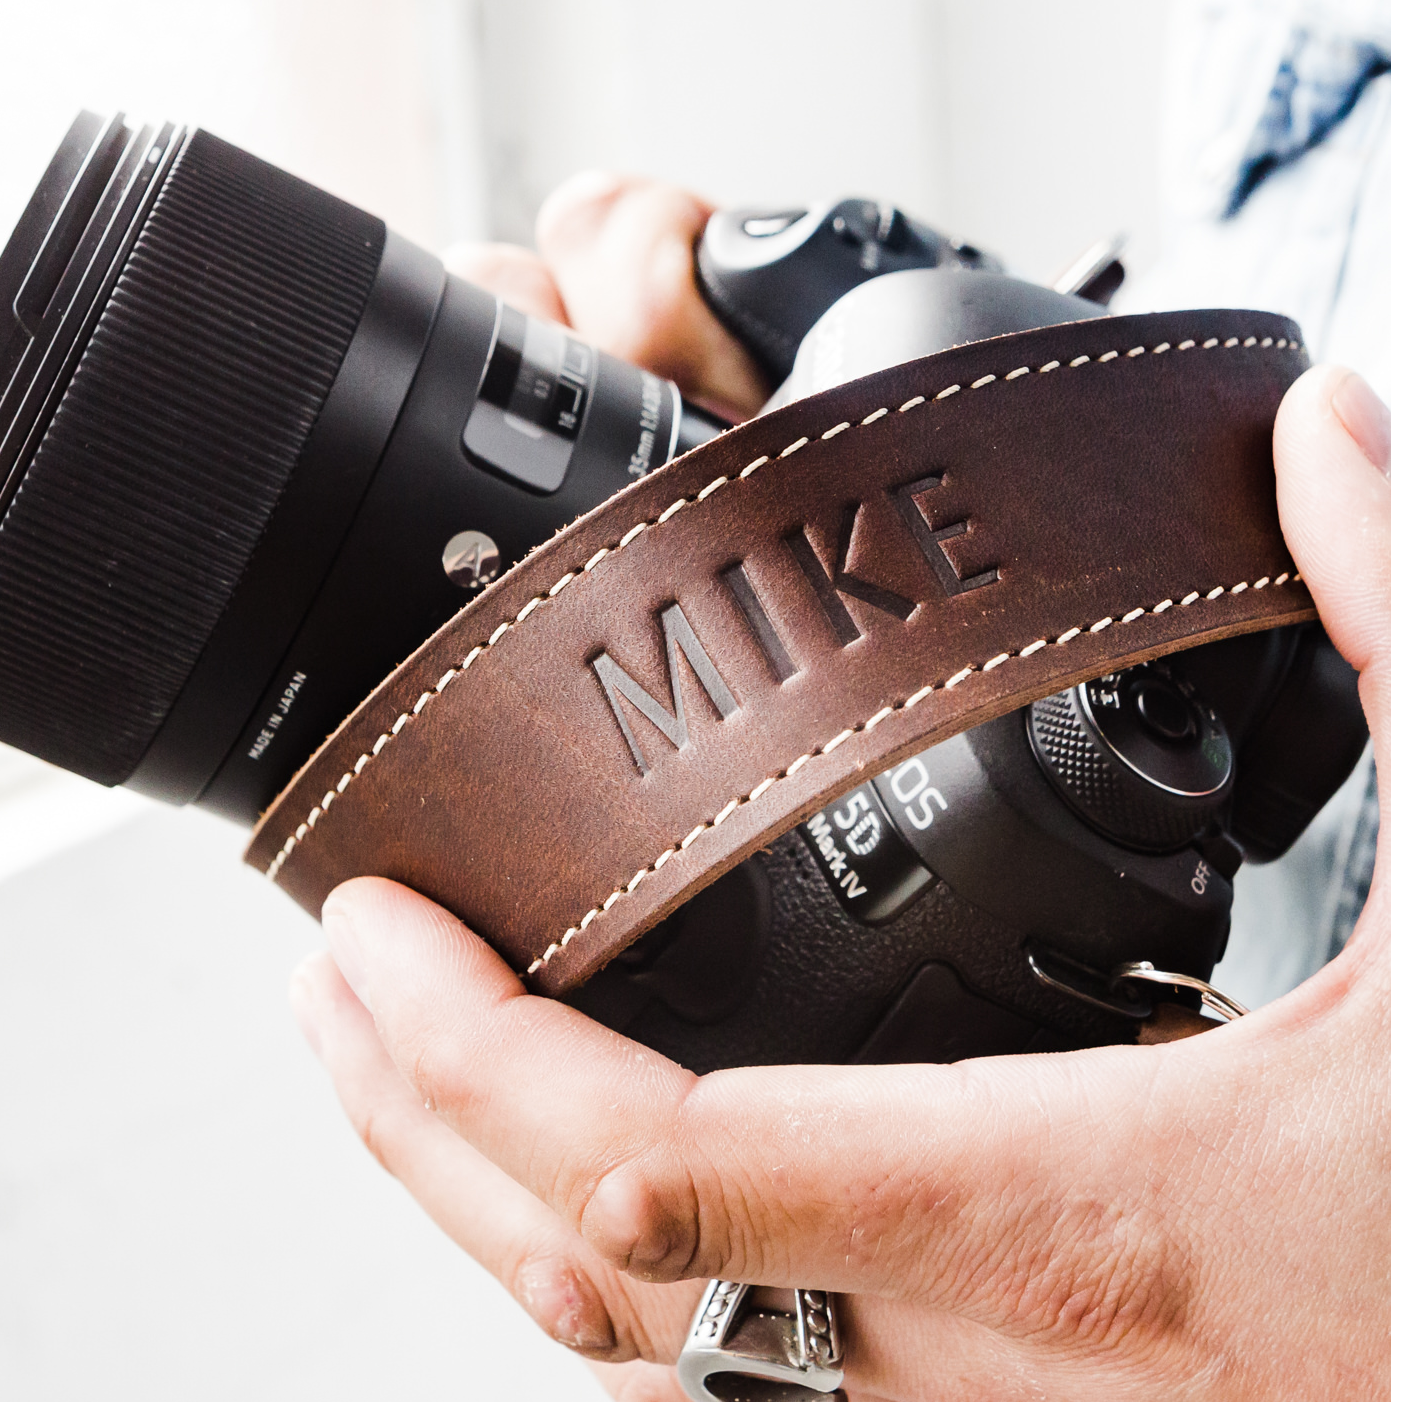 a camera wrapped in a personalized handmade leather camera strap